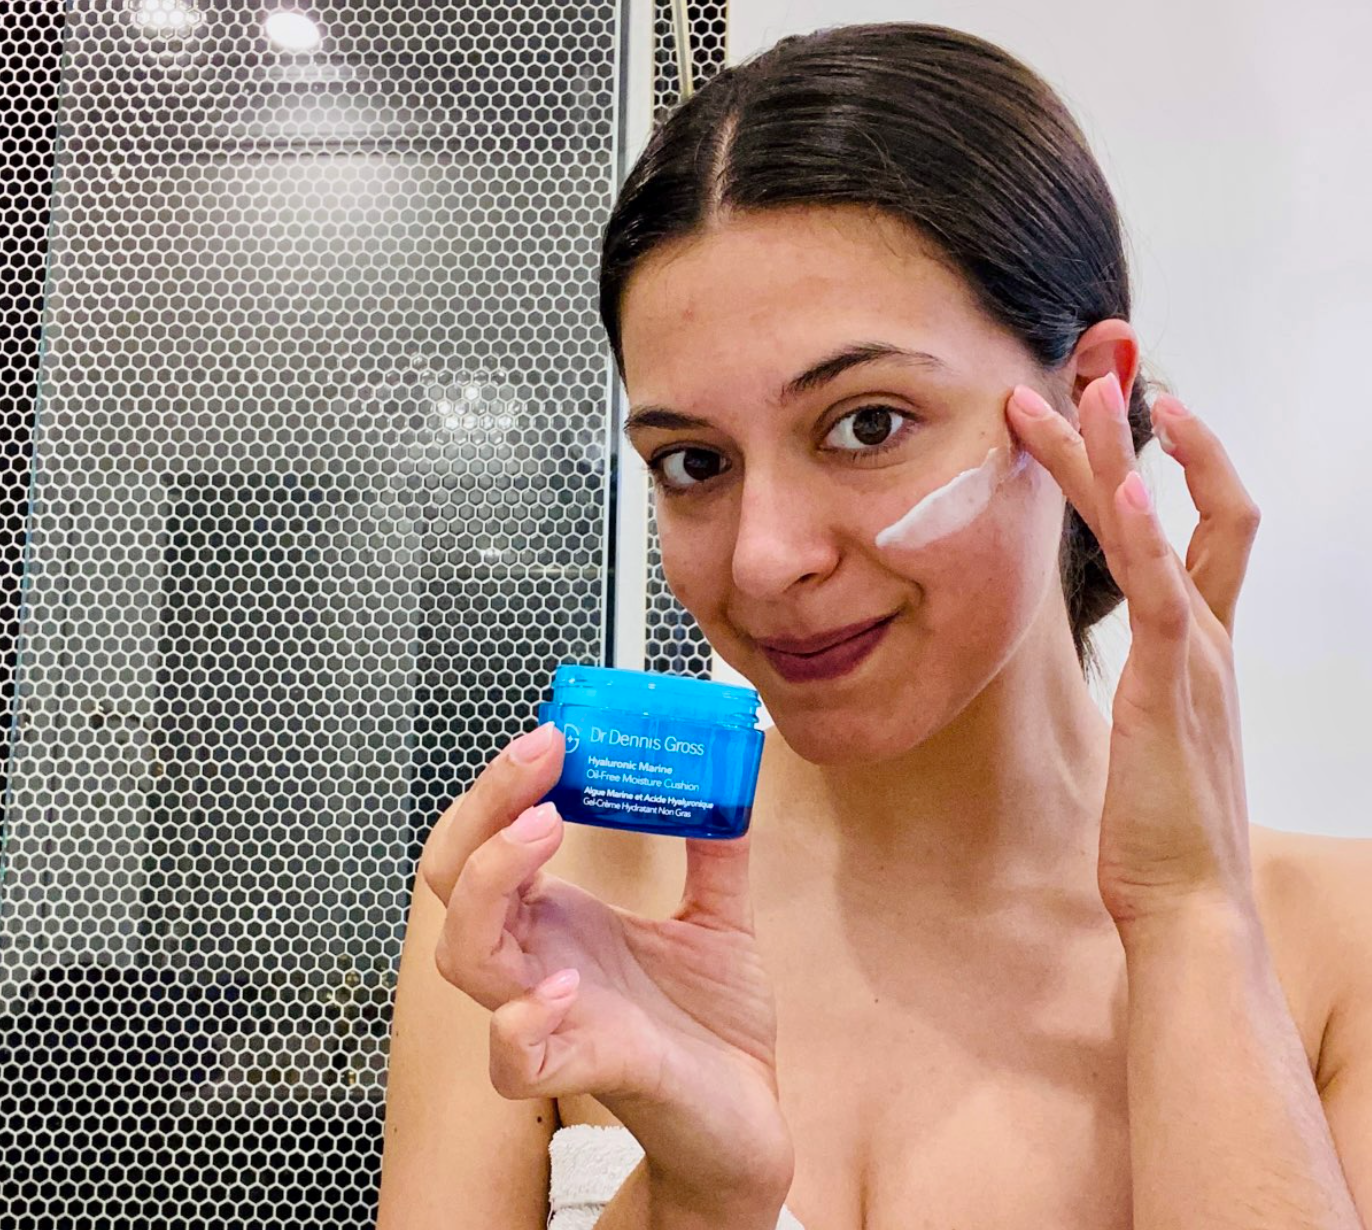 Celebs and Sephora shoppers love this oil-free moisturizer - here's why I'm hooked on it, too